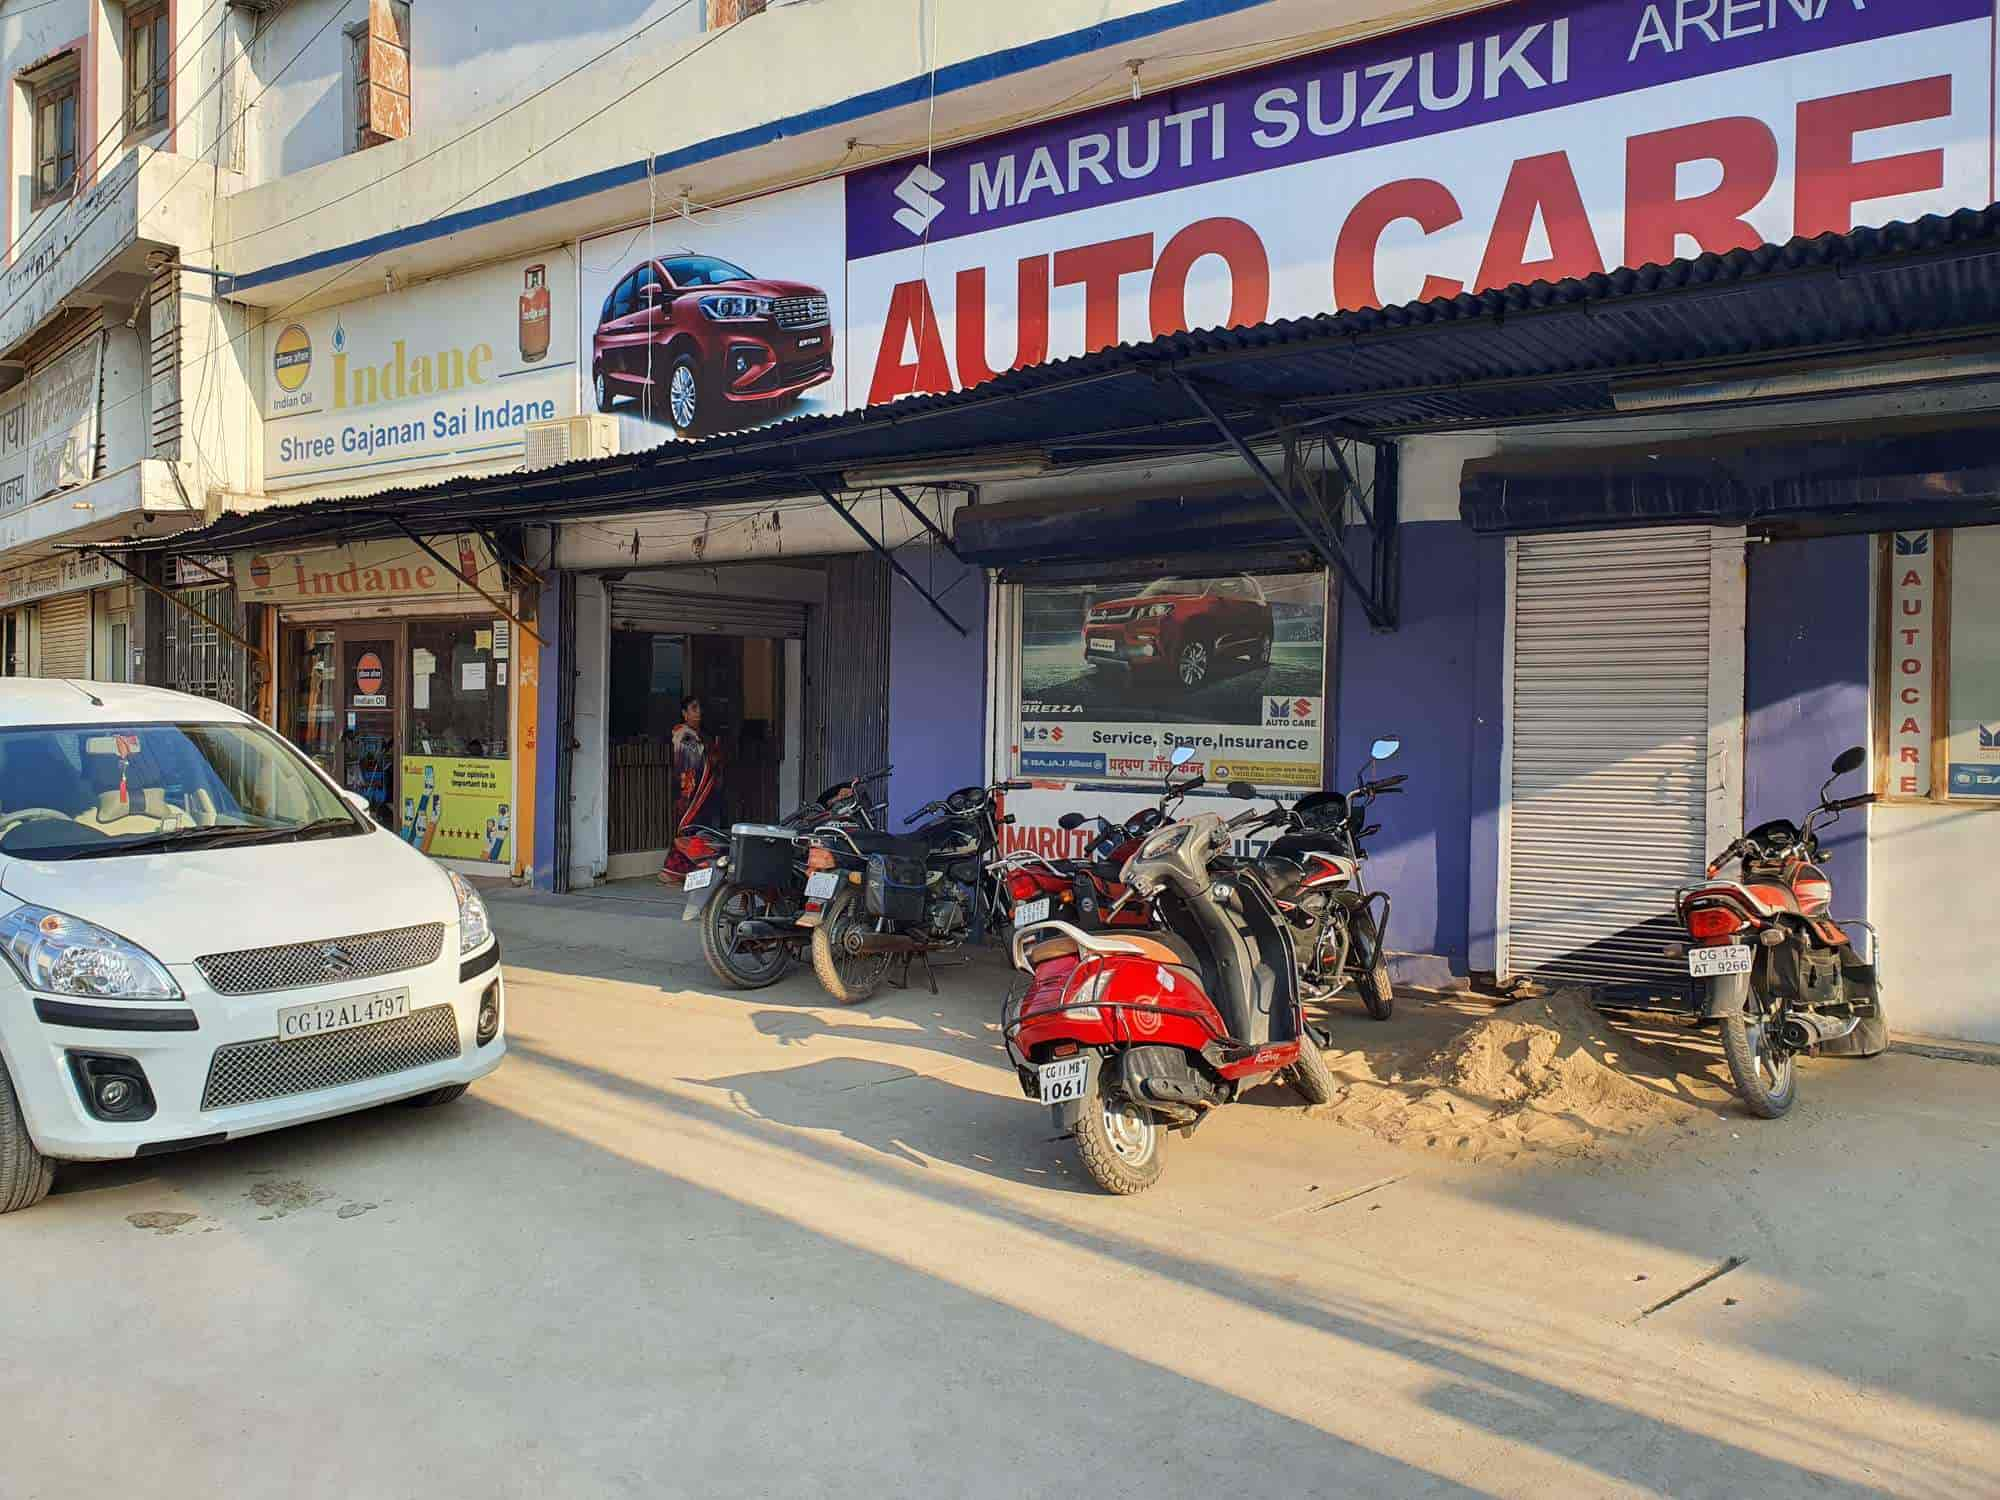 Auto Care Jamnipali Car Repair Services In Korba Justdial